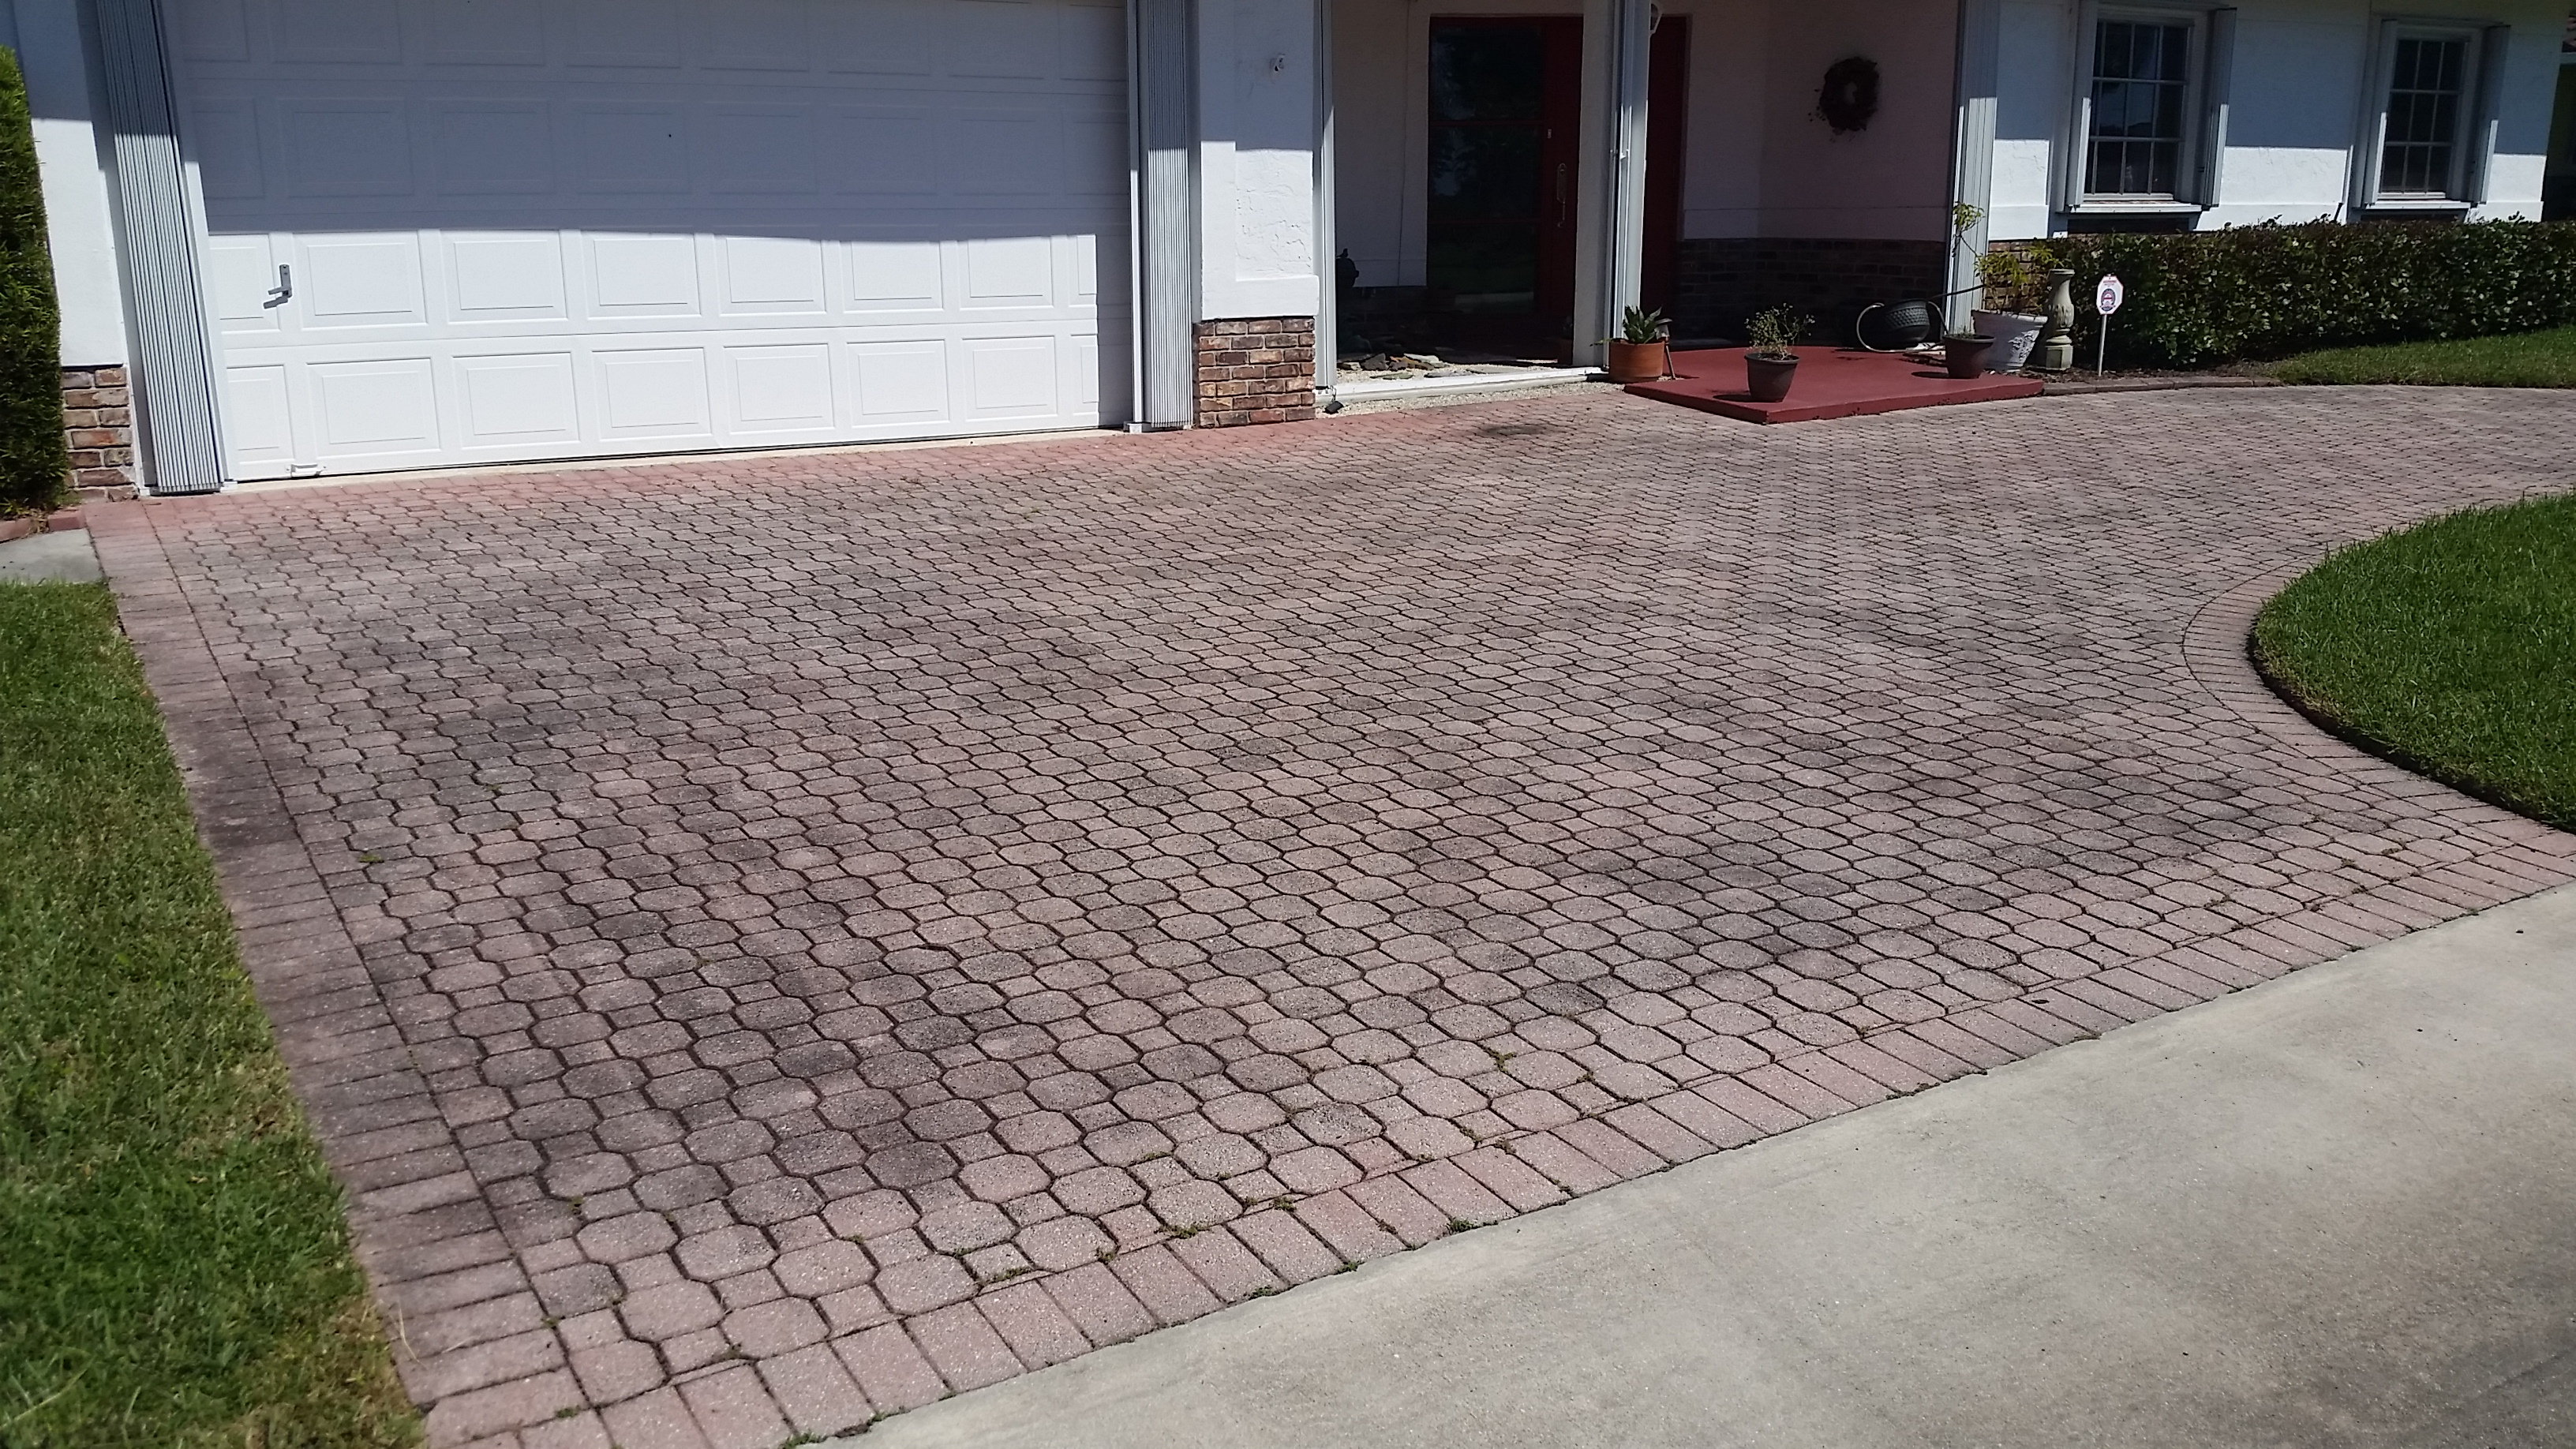 Driveway cleaning pressure cleaning roof cleaning for Driveway cleaning chemicals